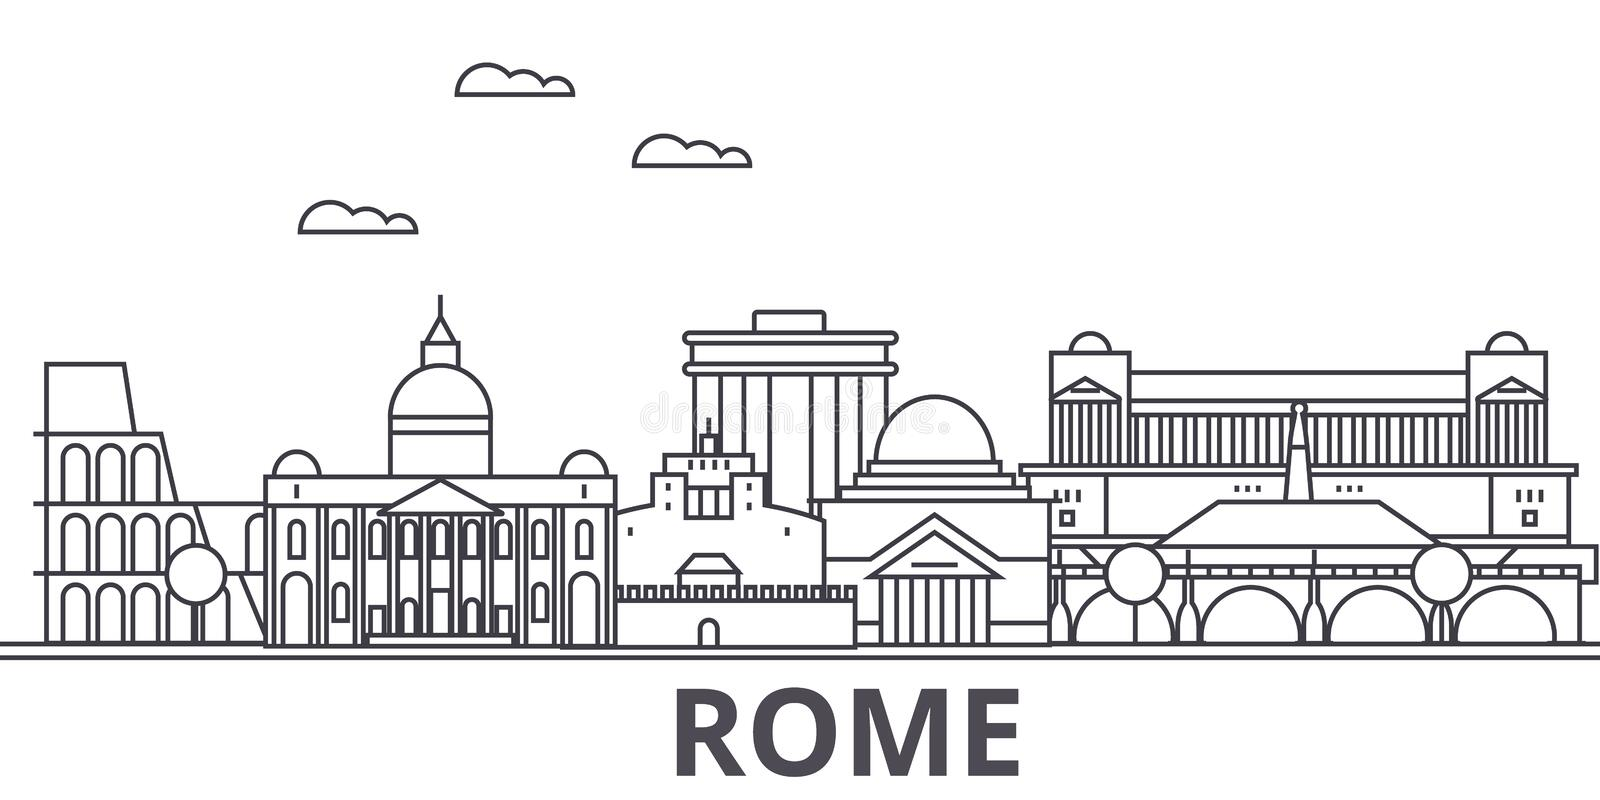 Rome architecture line skyline illustration. Linear vector cityscape with famous landmarks, city sights, design icons. Editable strokes stock illustration